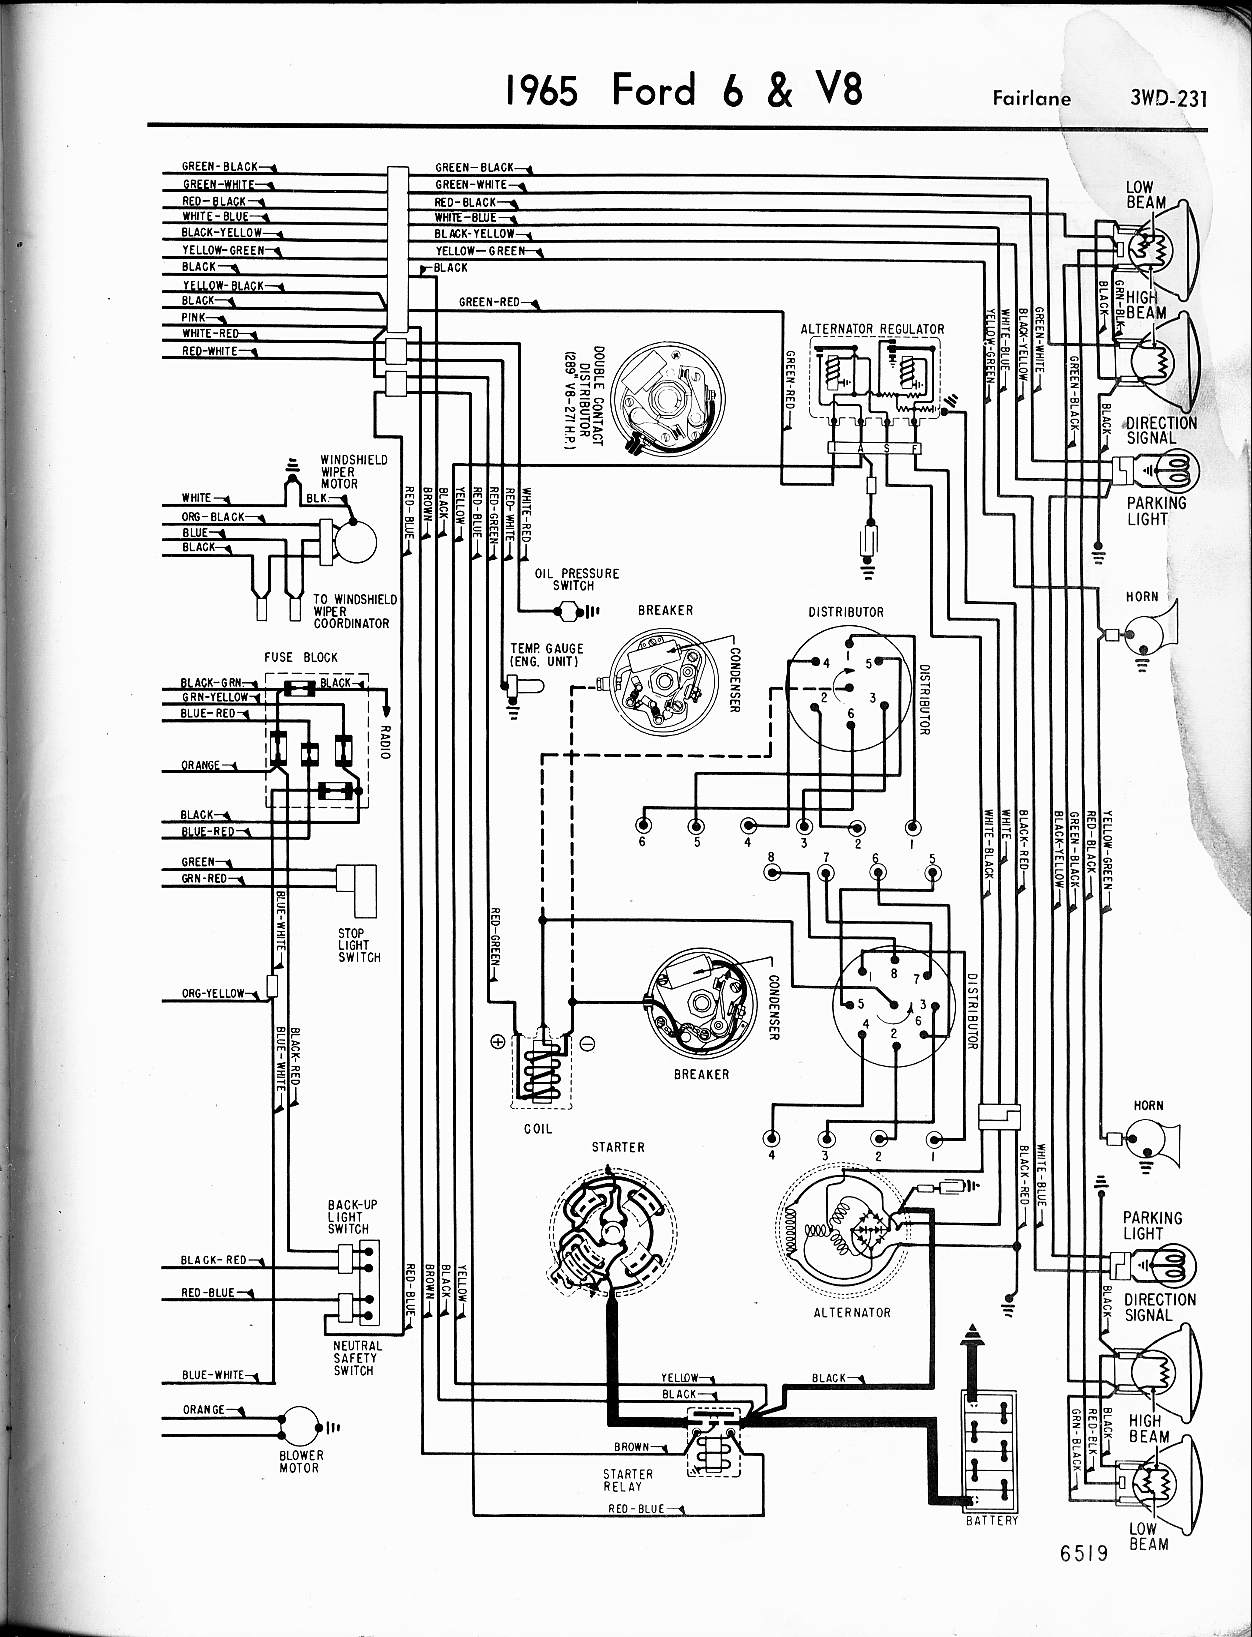 1994 ford mustang radio wiring diagram pdf with Geo Metro Ignition Switch Wiring Diagram on RepairGuideContent furthermore 2000 Ford Focus Cooling Fan Wiring Diagram also RepairGuideContent furthermore Wiring Diagram 1974 Ford Accessories likewise respond.